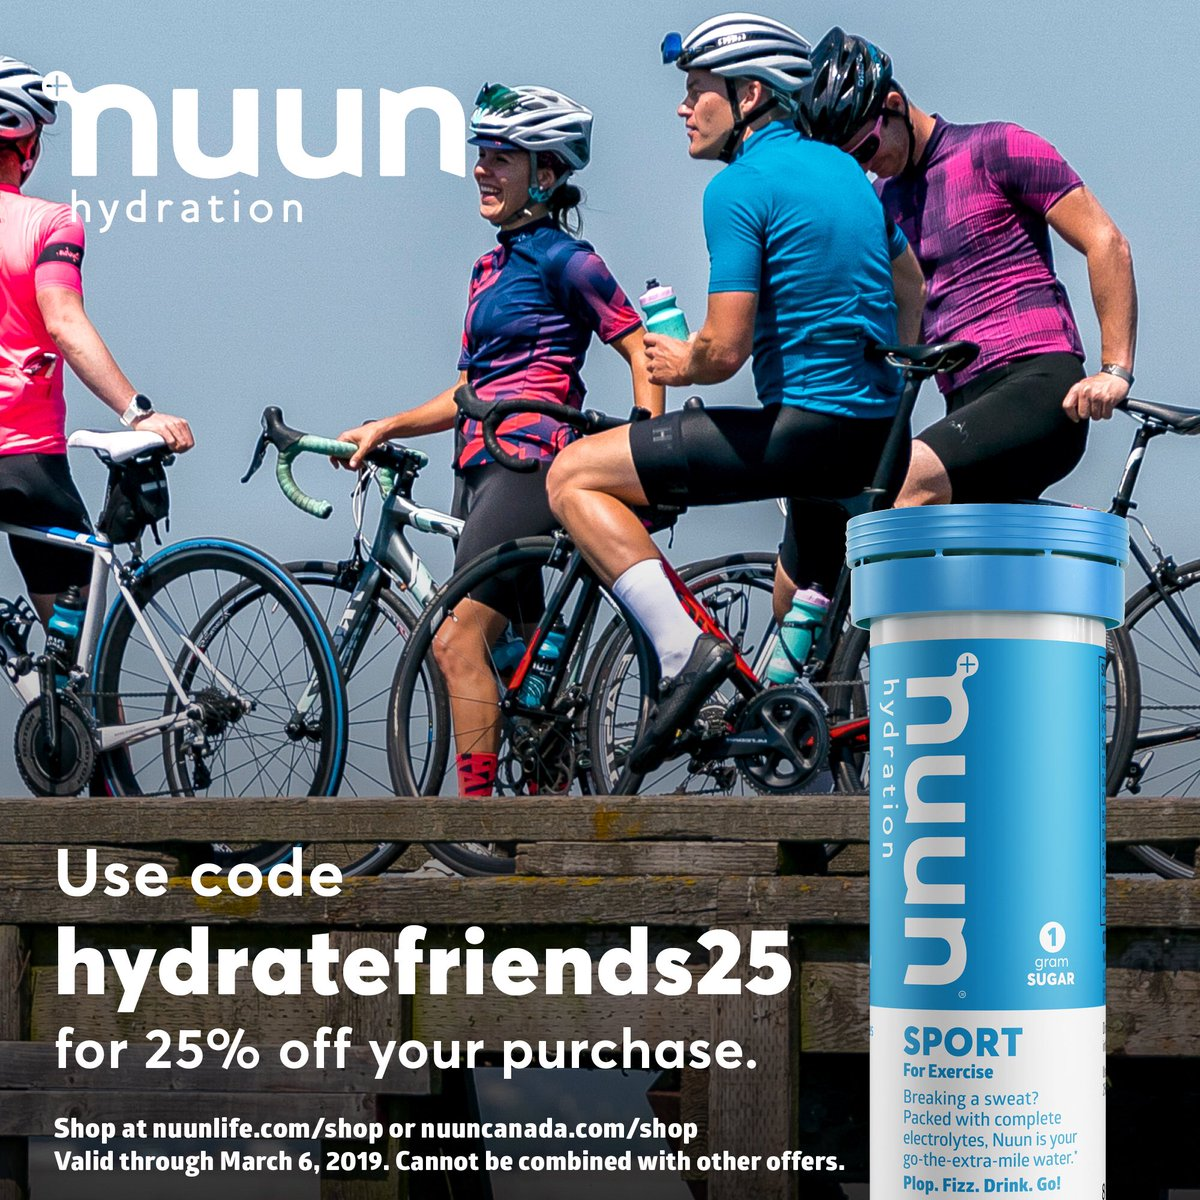 Stay hydrated my friends!! ⠀ Use code: HYDRATEFRIENDS25 for 25% off your purchase! (valid through March 6th) ⠀ #nuun #nuunlife #nuunbassador #teamnuun #makeyourwatercount #nuunies #hydrate #promocode<br>http://pic.twitter.com/DyZKXwMp92